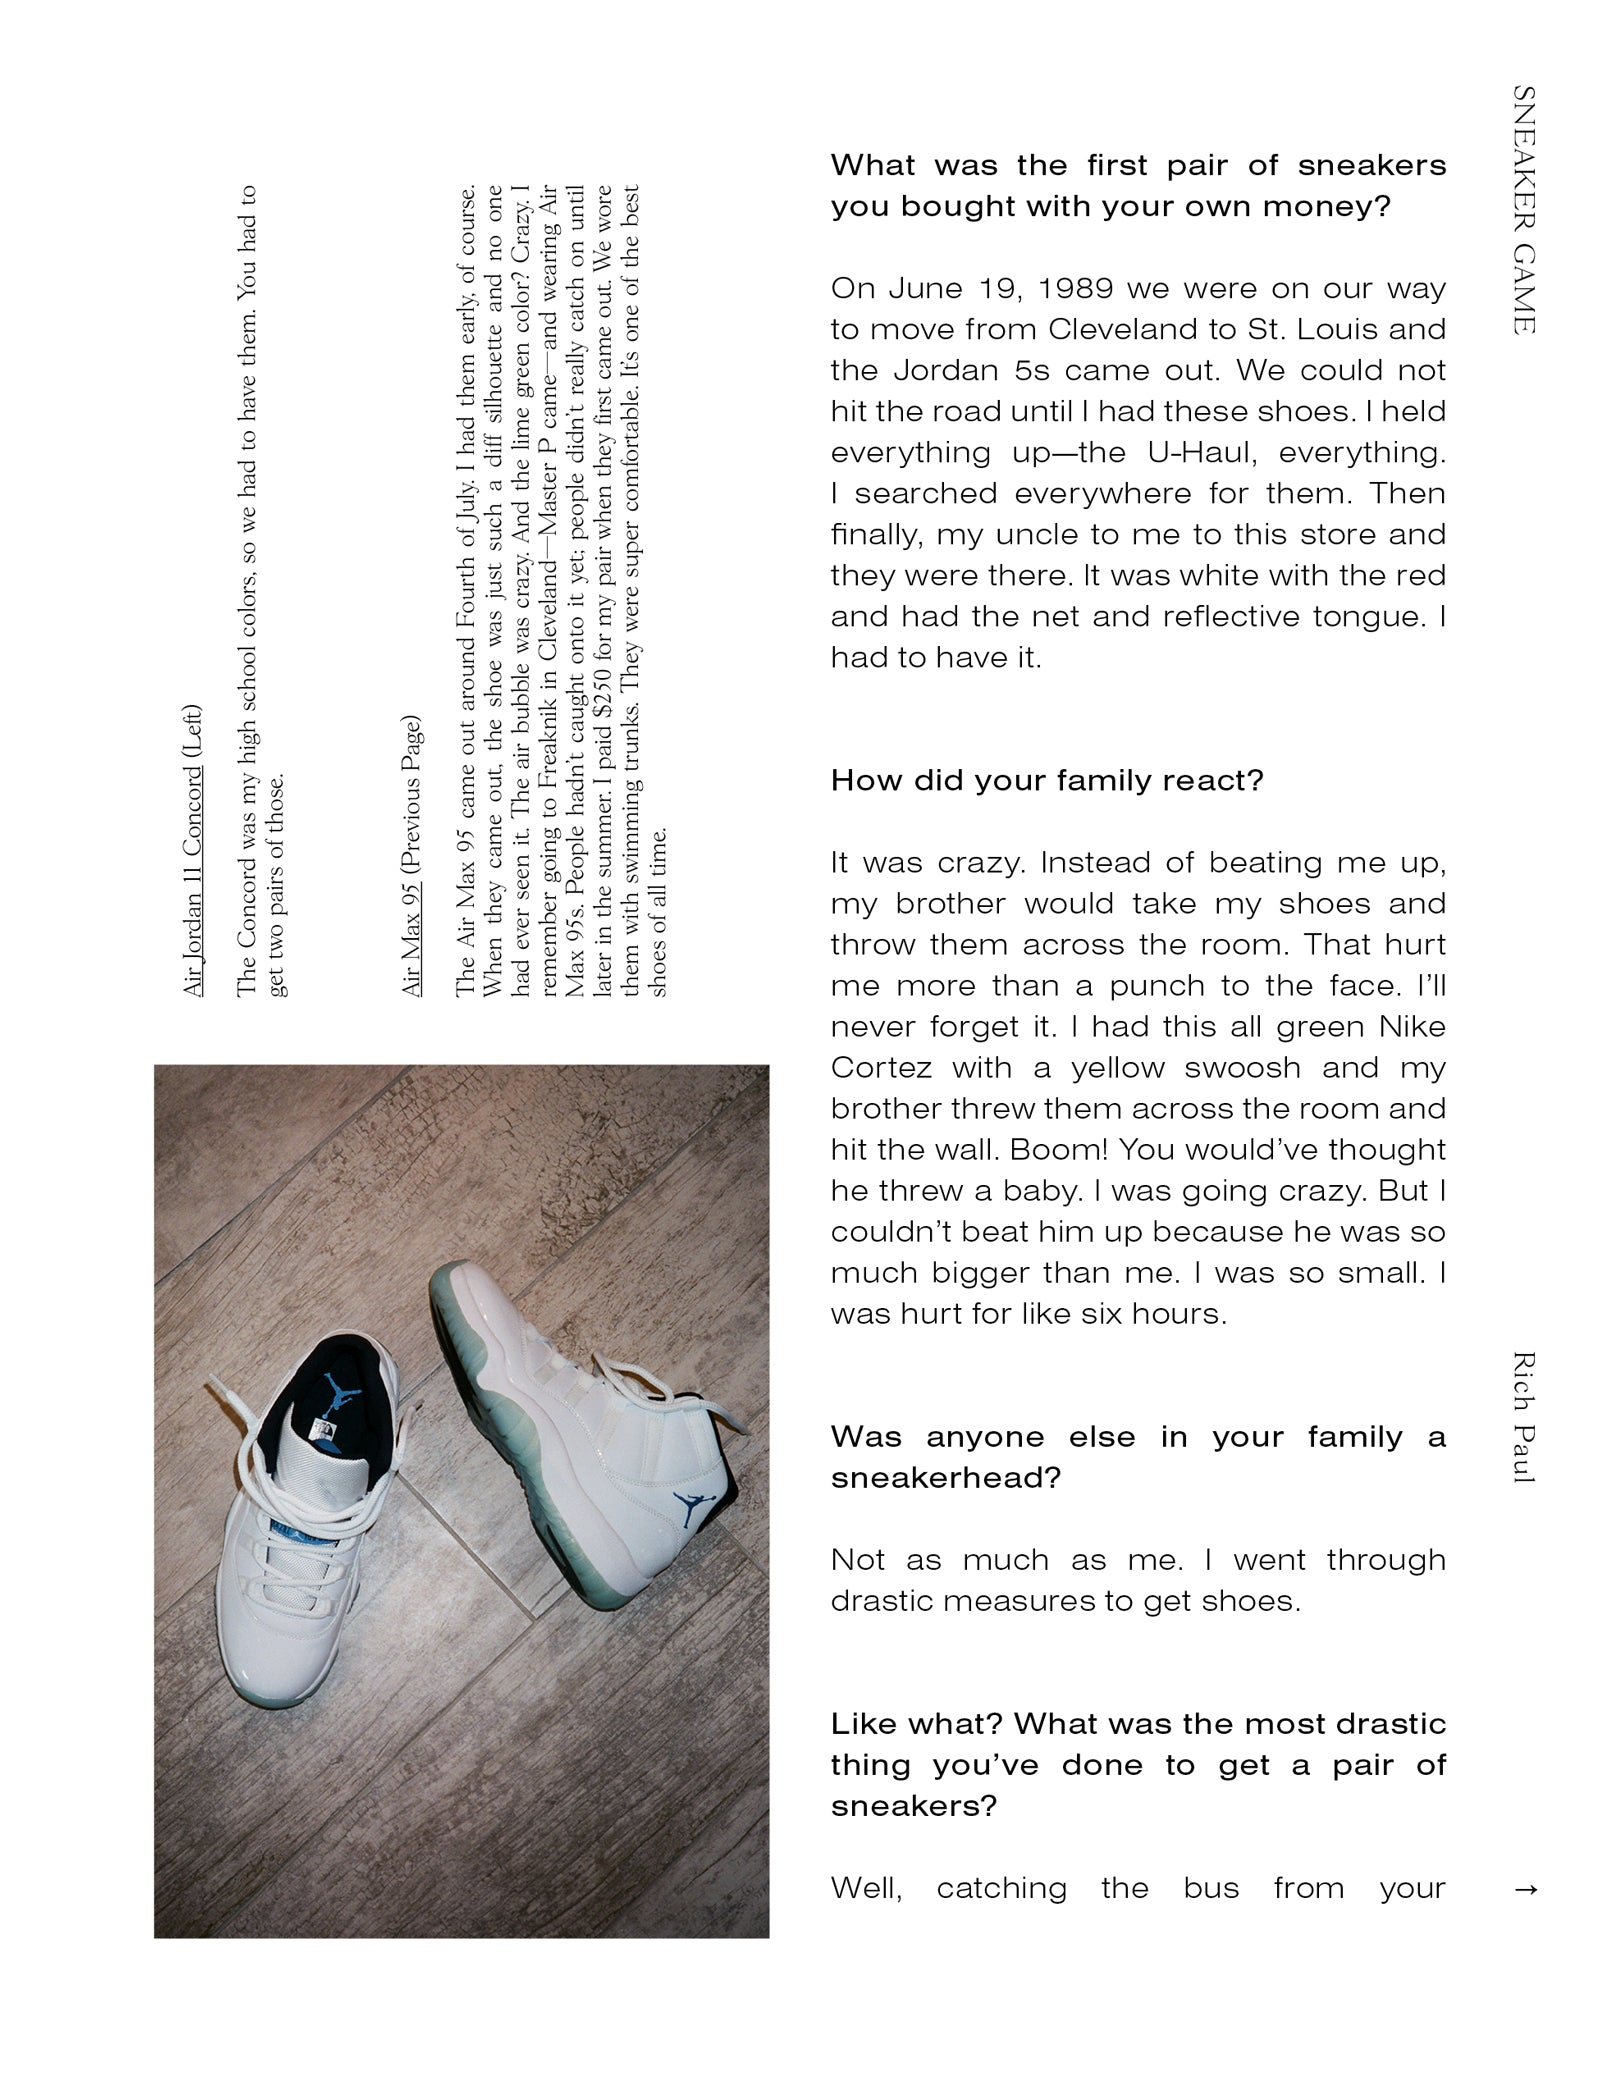 What was the first pair of sneakers you bought with your own money? On June 19, 1989 we were on our way to move from Cleveland to St. Louis and the Jordan 5s came out. We could not hit the road until I had these shoes. I held everything up—the U-Haul, everything. I searched everywhere for them. Then finally, my uncle to me to this store and they were there. It was white with the red and had the net and reflective tongue. I had to have it. How did your family react? It was crazy. Instead of beating me up, my brother would take my shoes and throw them across the room. That hurt me more than a punch to the face. I'll never forget it. I had this all green Nike Cortez with a yellow swoosh and my brother threw them across the room and hit the wall. Boom! You would've thought he threw a baby. I was going crazy. But I couldn't beat him up because he was so much bigger than me. I was so small. I was hurt for like six hours. Was anyone else in your family a sneakerhead? Not as much as me. I went through drastic measures to get shoes. Like what? What was the most drastic thing you've done to get a pair of sneakers? Well, catching the bus from your... Air Jordan 11 Concord (Left) The Concord was my high school colors, so we had to have them. You had to get two pairs of those.